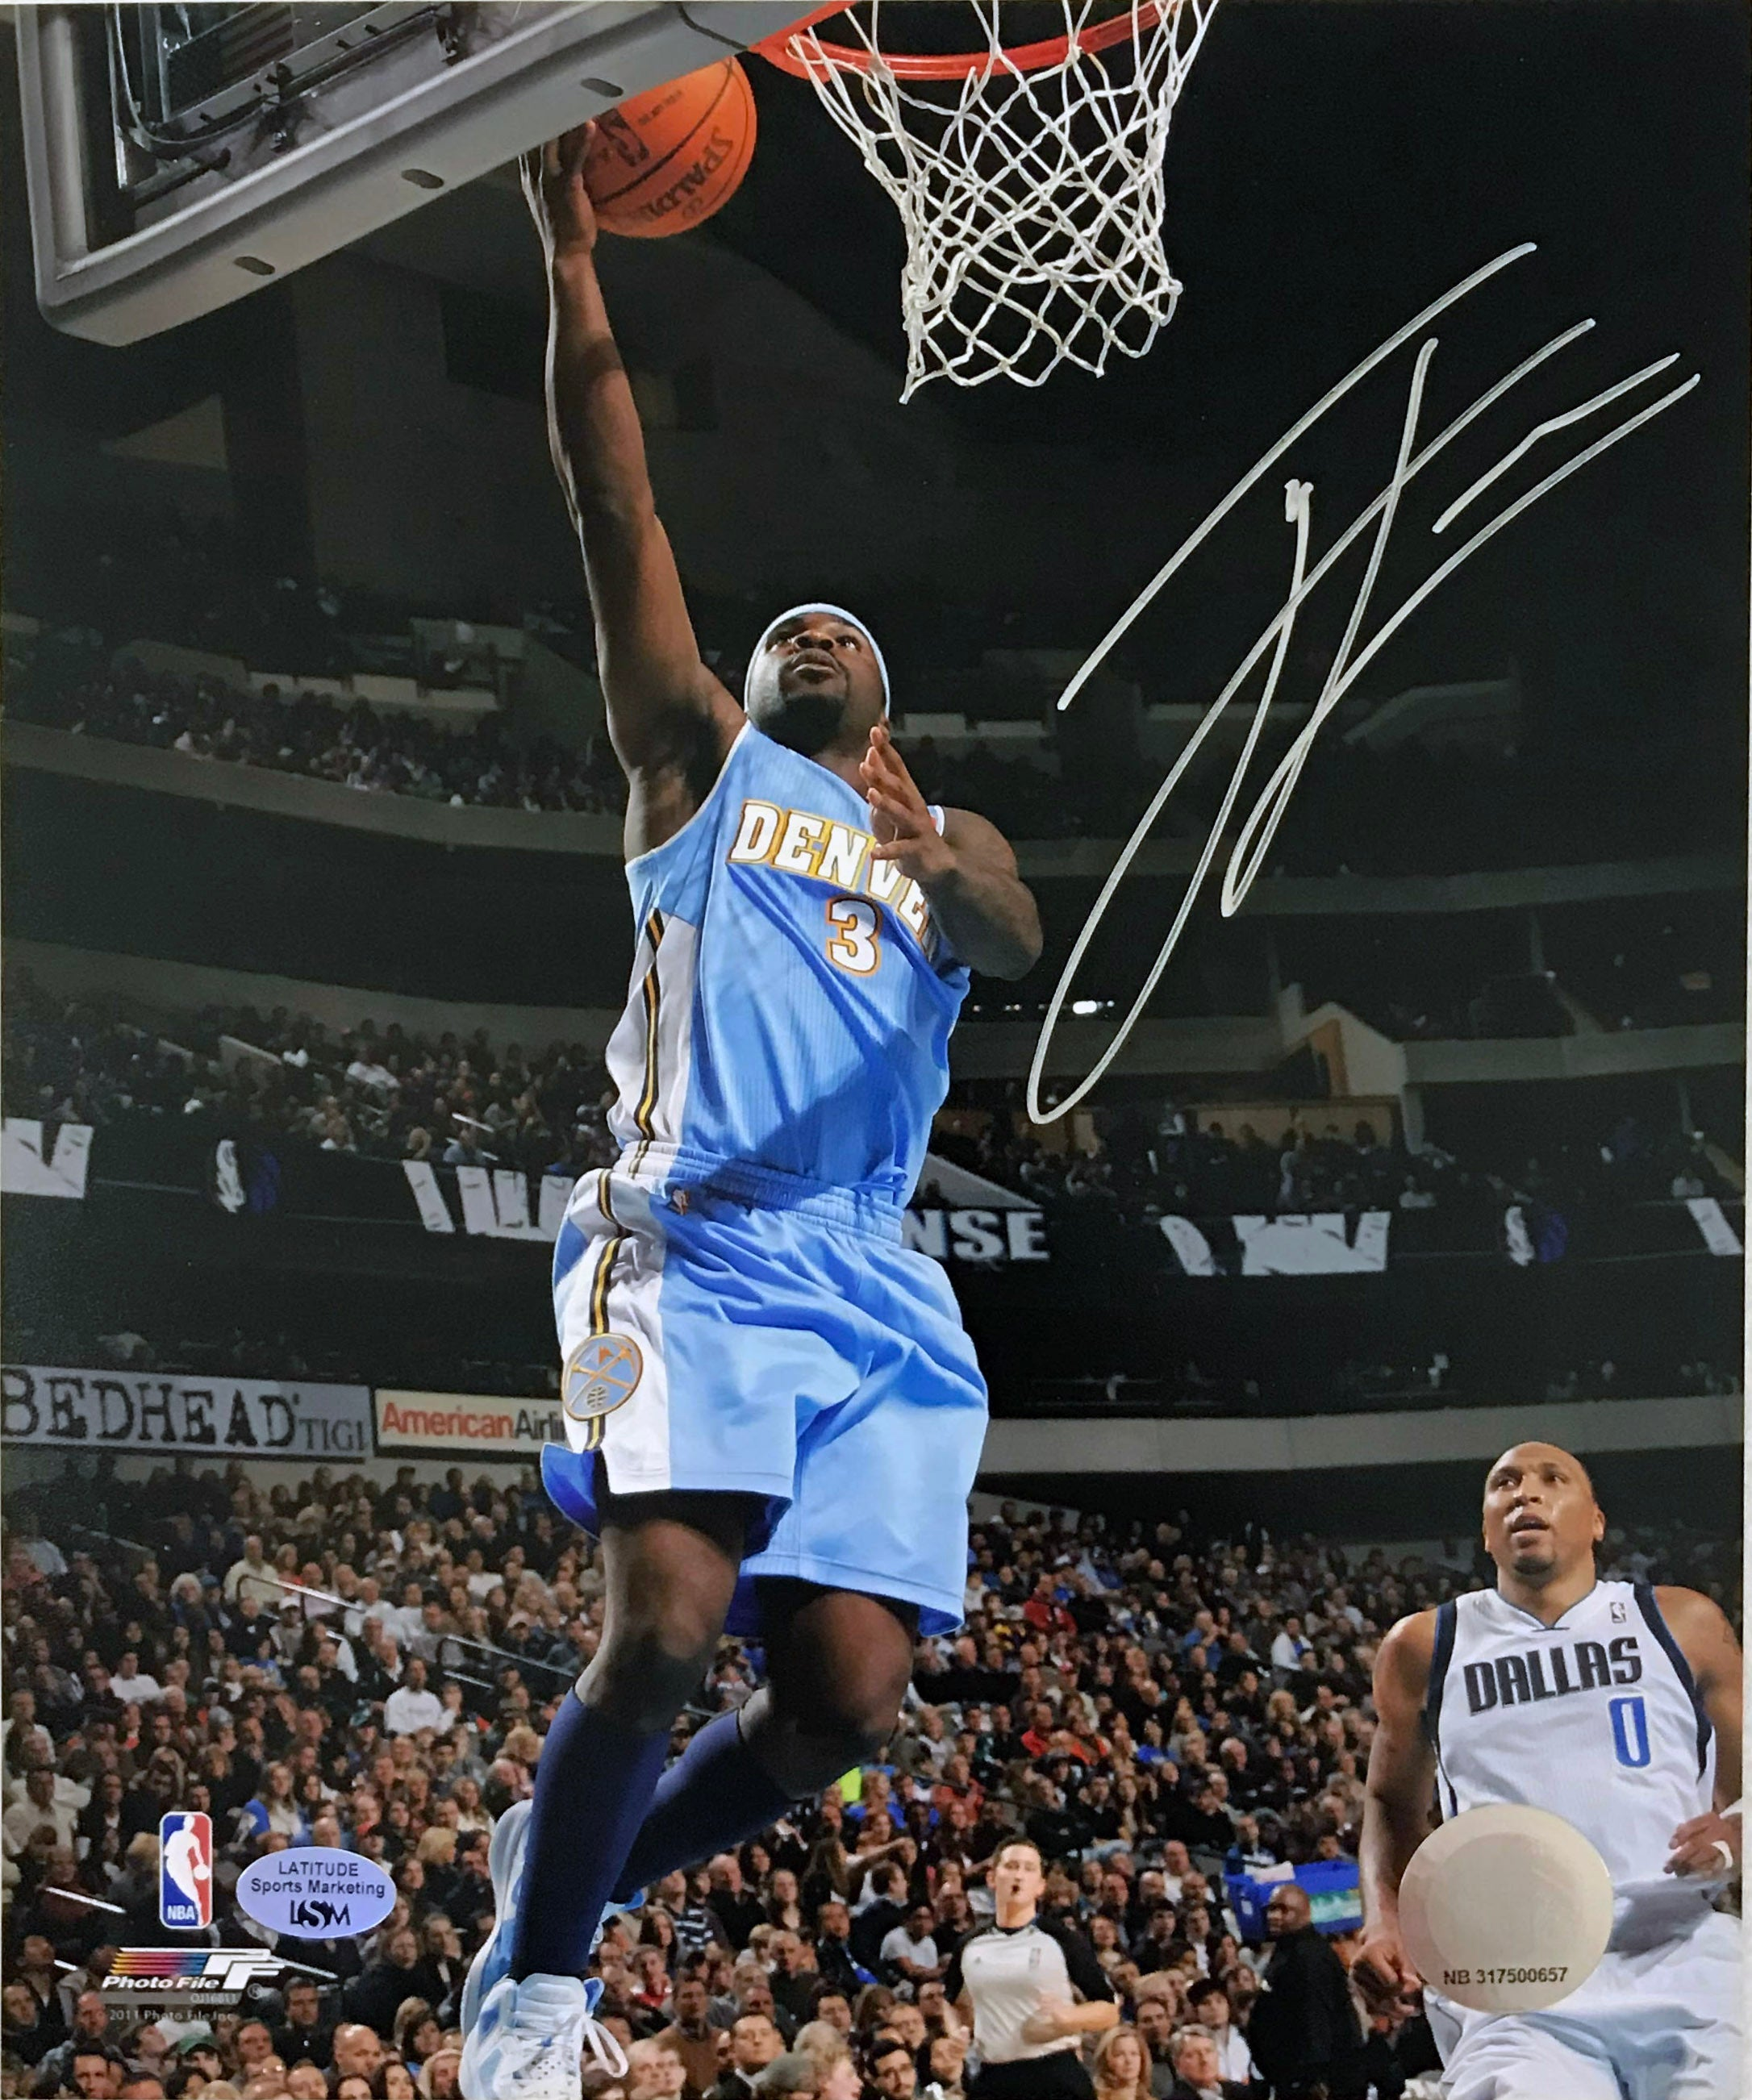 Ty Lawson Signed 8x10 Photo (Blue Uniform) (Blowout) - Latitude Sports Marketing